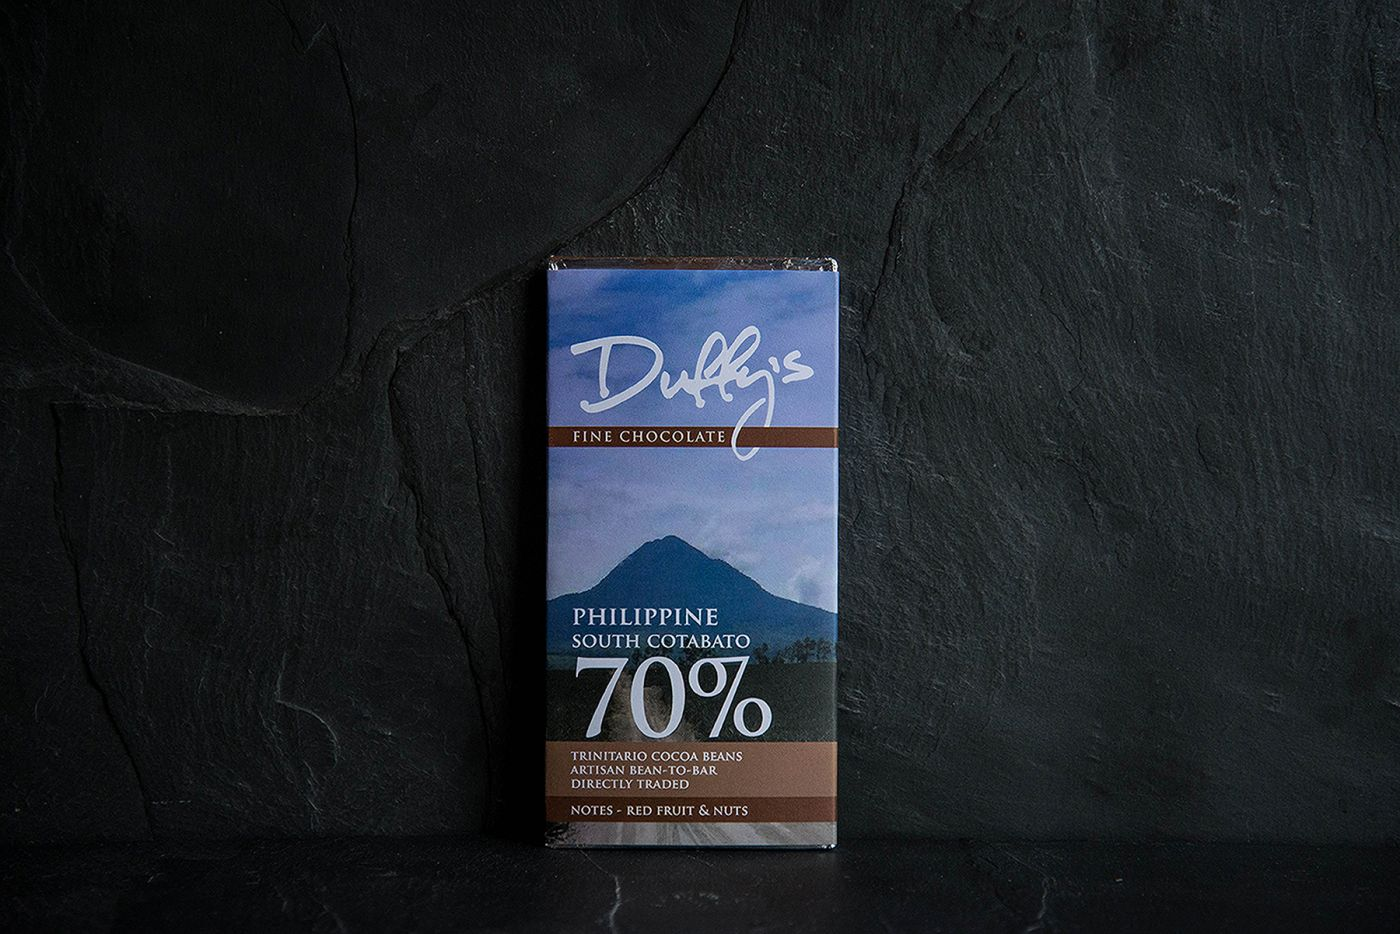 Philippines South Cotabo 70%